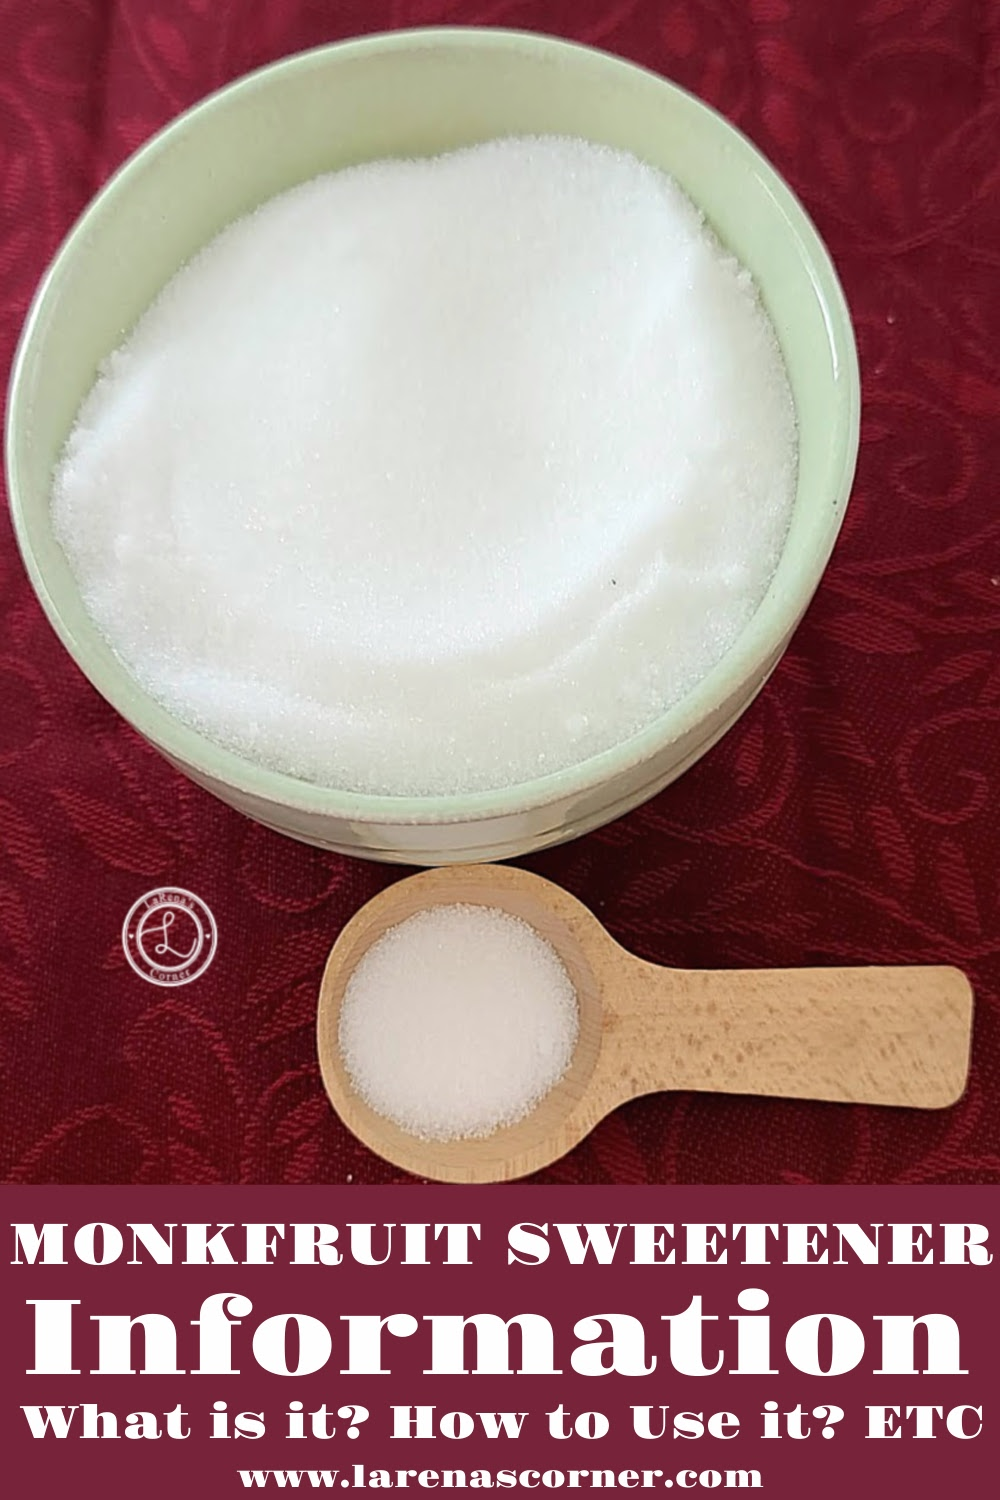 Monkfruit Sweetener Information in a bowl and some in a wooden spoon.